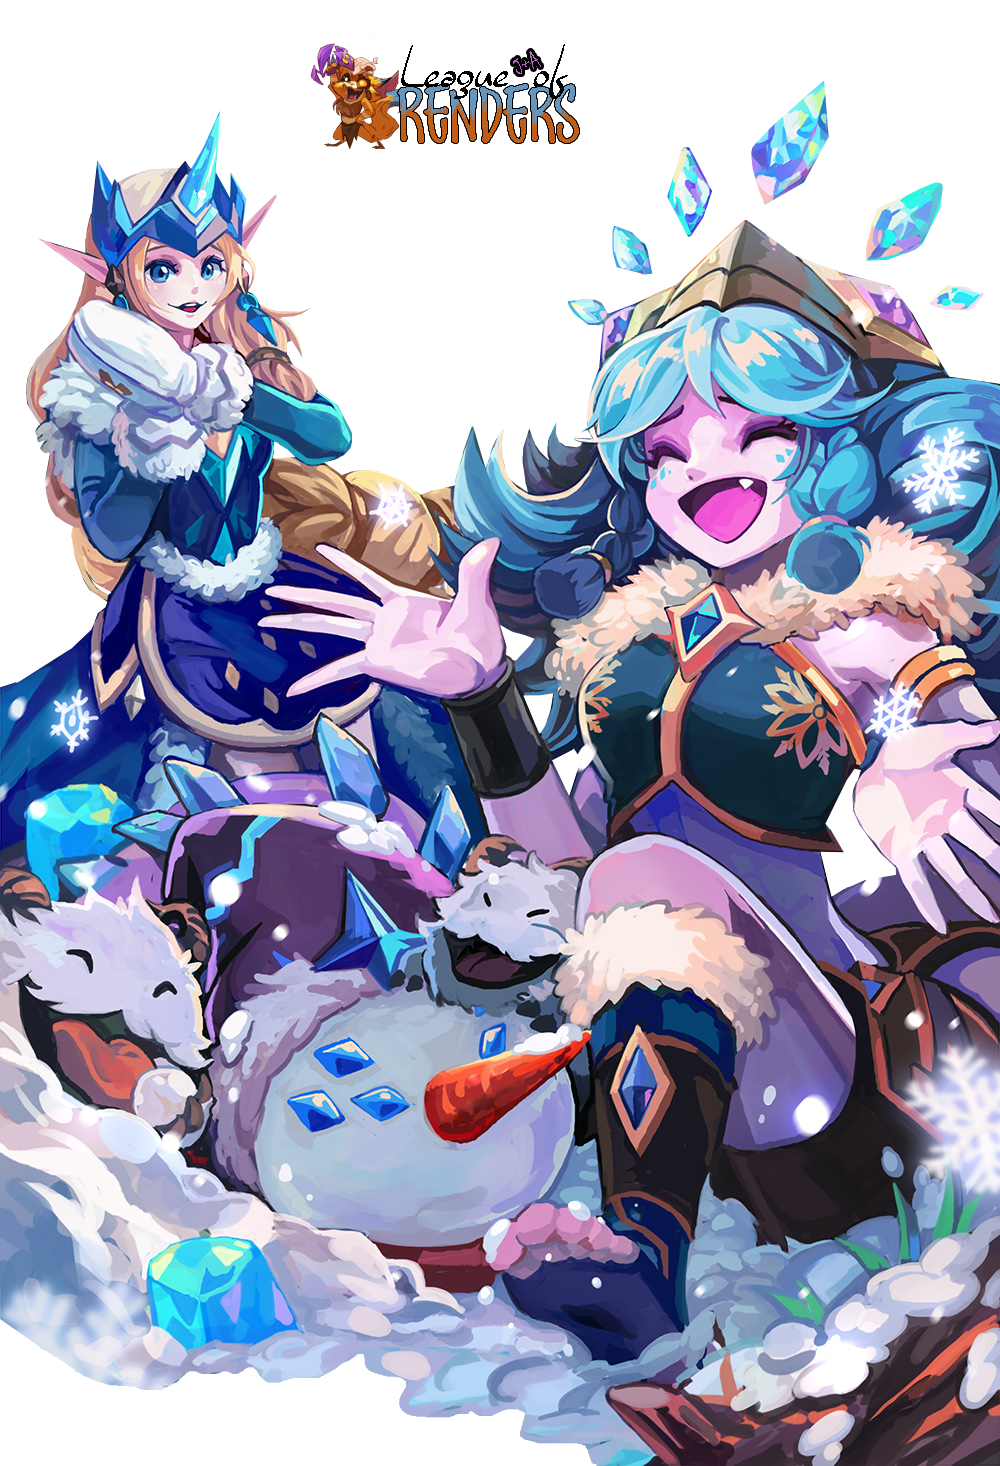 RENDER Snow Man Yi, Winter Wonder Soraka & Neeko